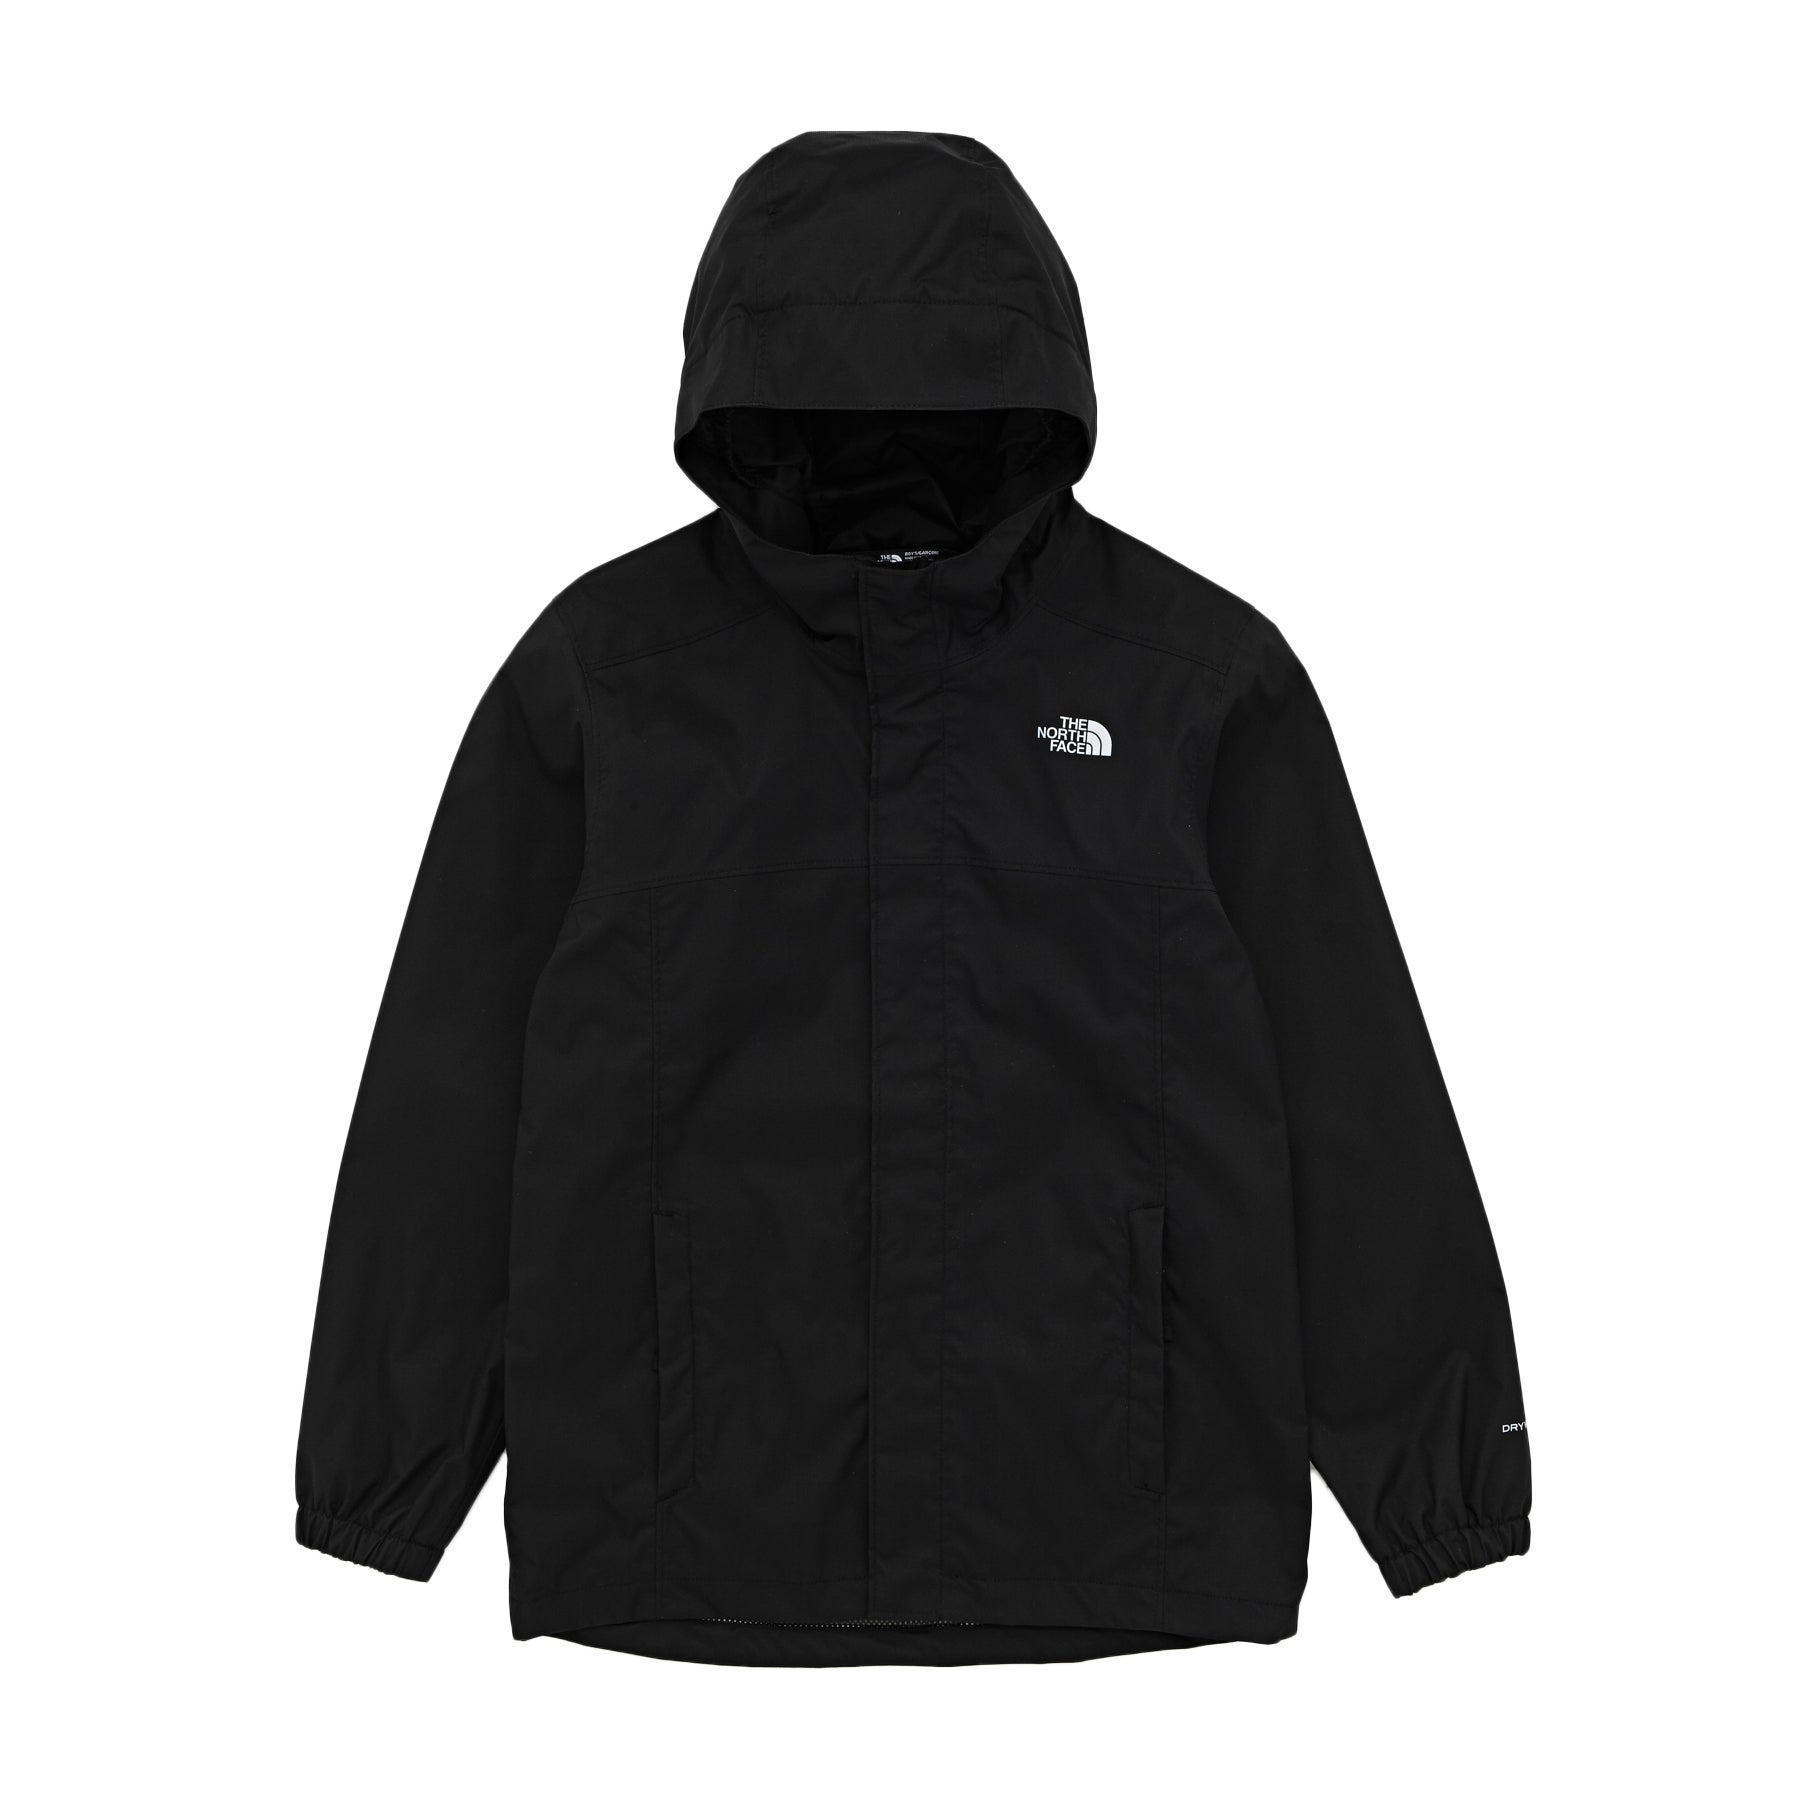 adcc8c1a63d0 North Face Resolve Reflective Boys Jacket available from Surfdome